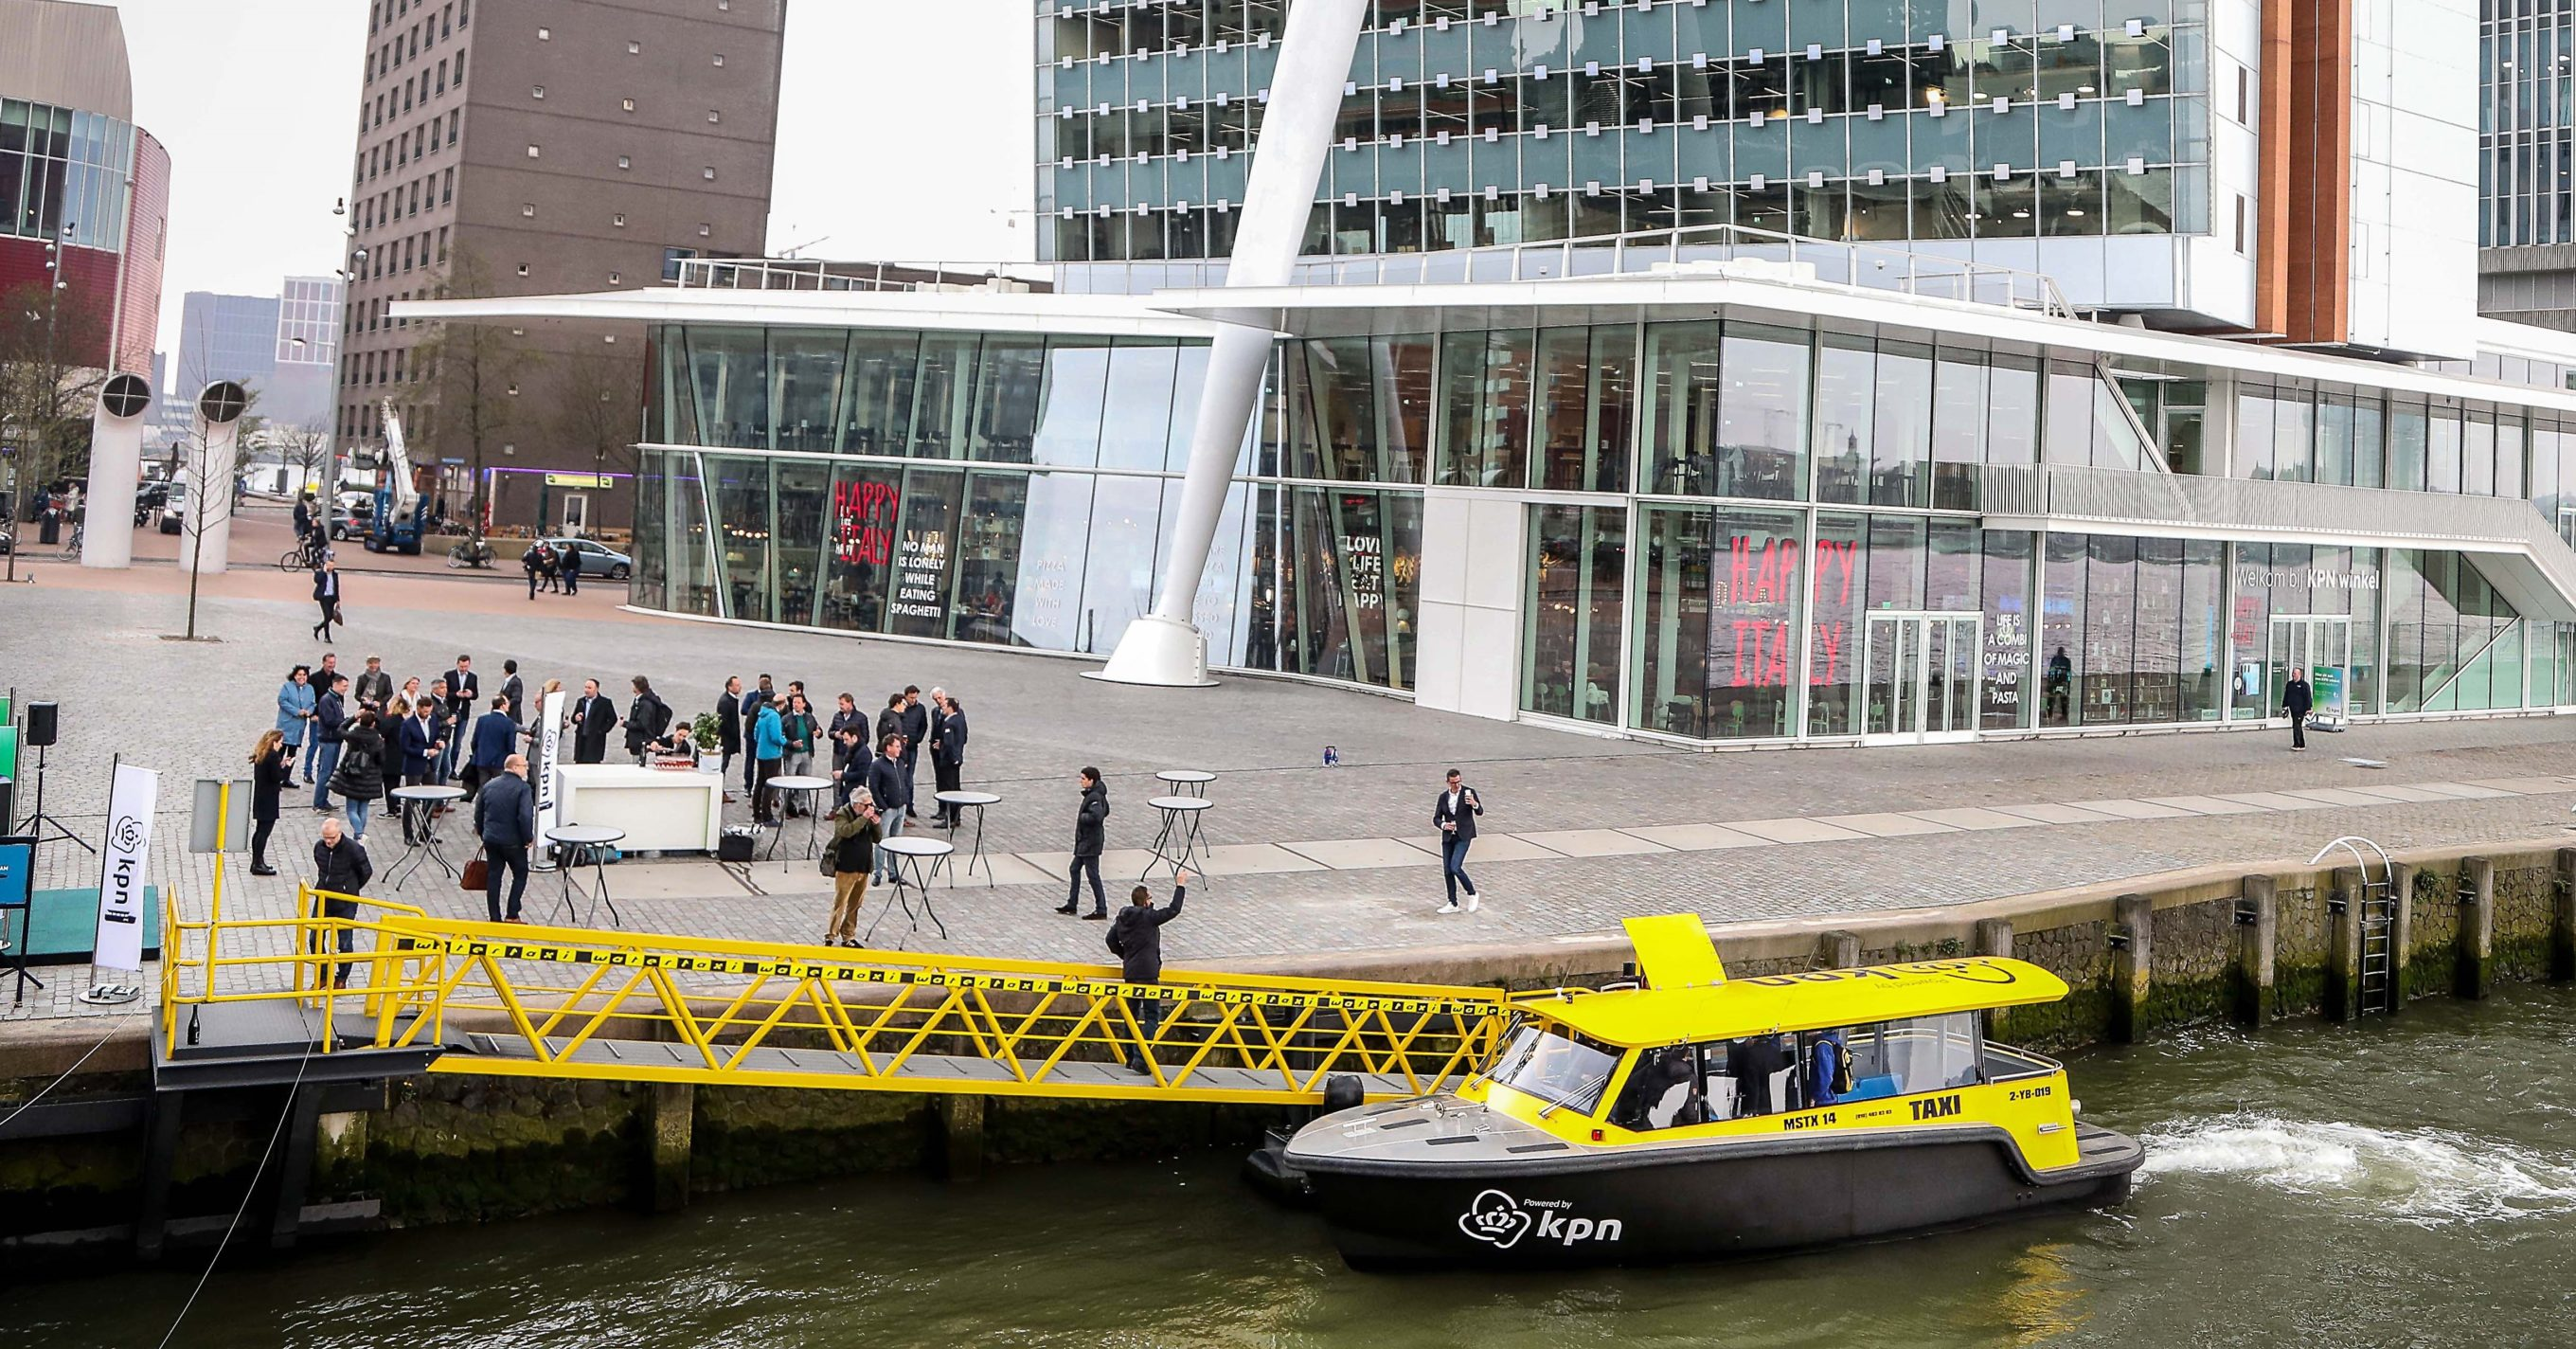 Watertaxi-2a